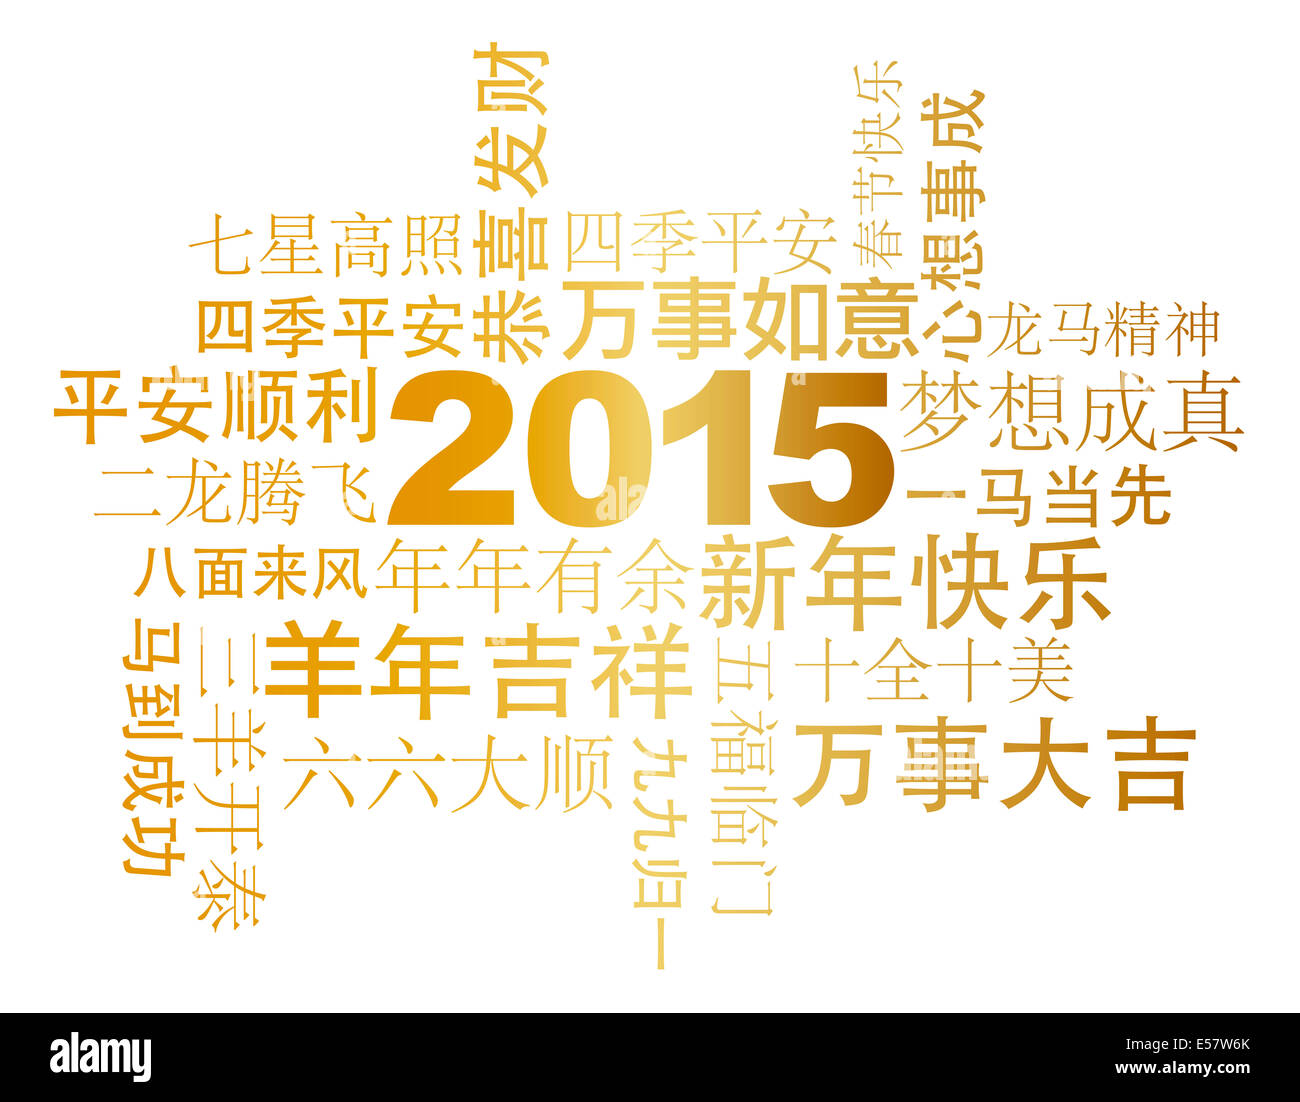 2015 Chinese Lunar New Year Greetings Text Wishing Health Good Fortune Prosperity Happiness in the Year of the Goat - Stock Image